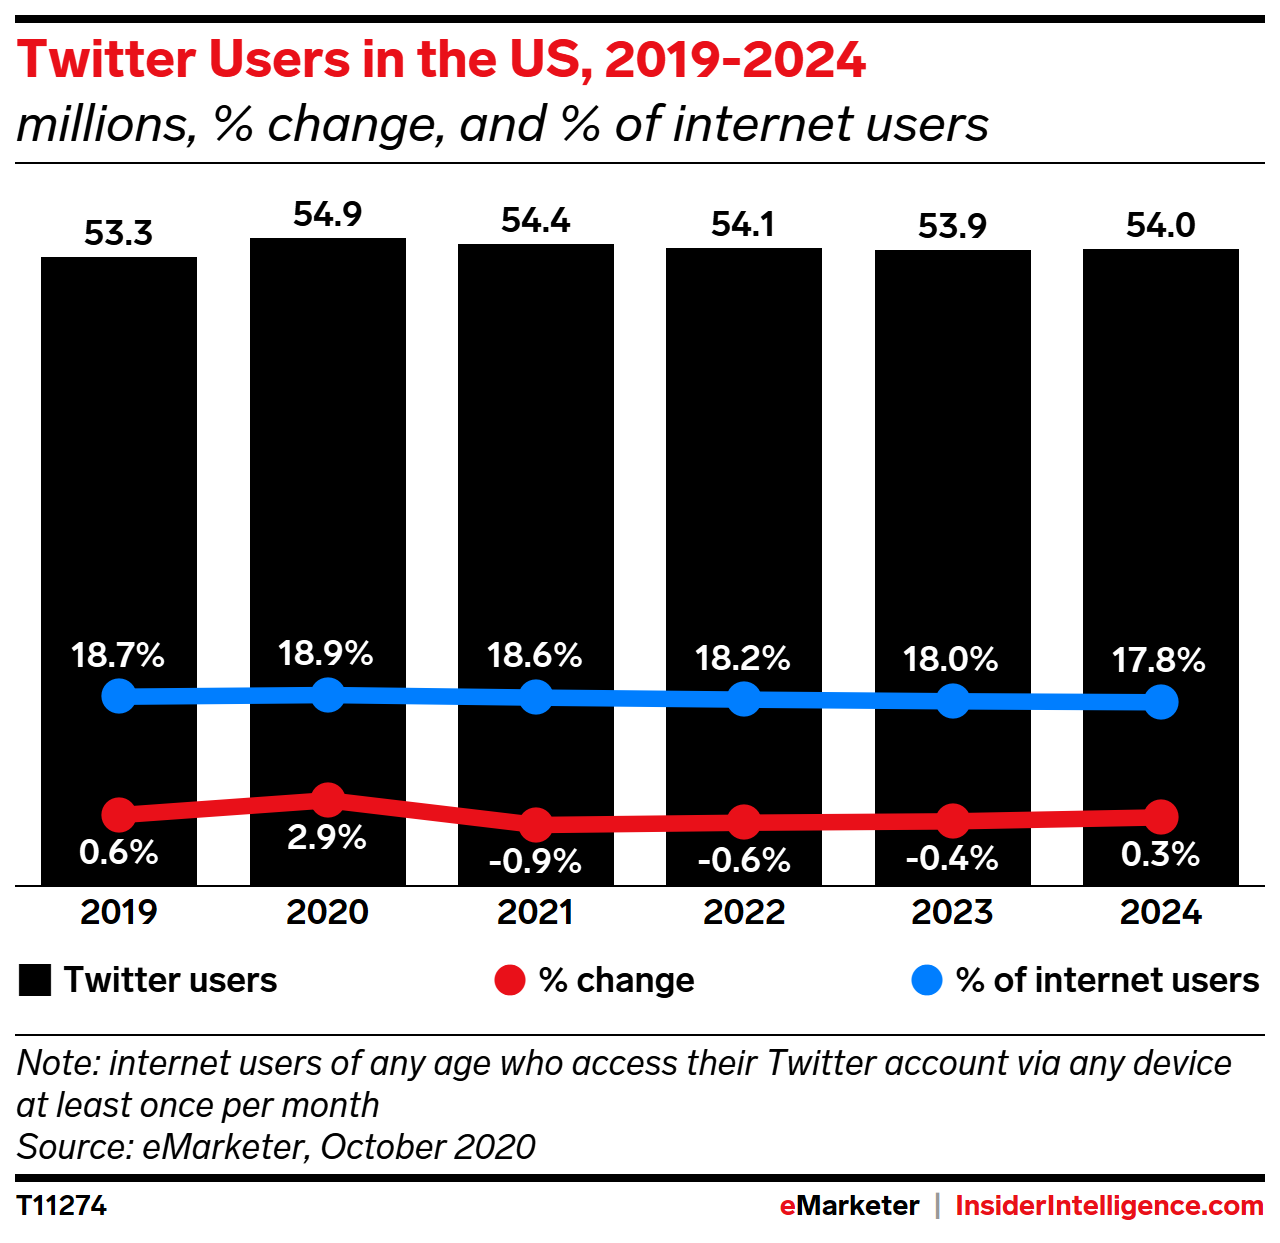 Twitter Users in the US, 2019-2024 (millions, % change, and % of internet users)